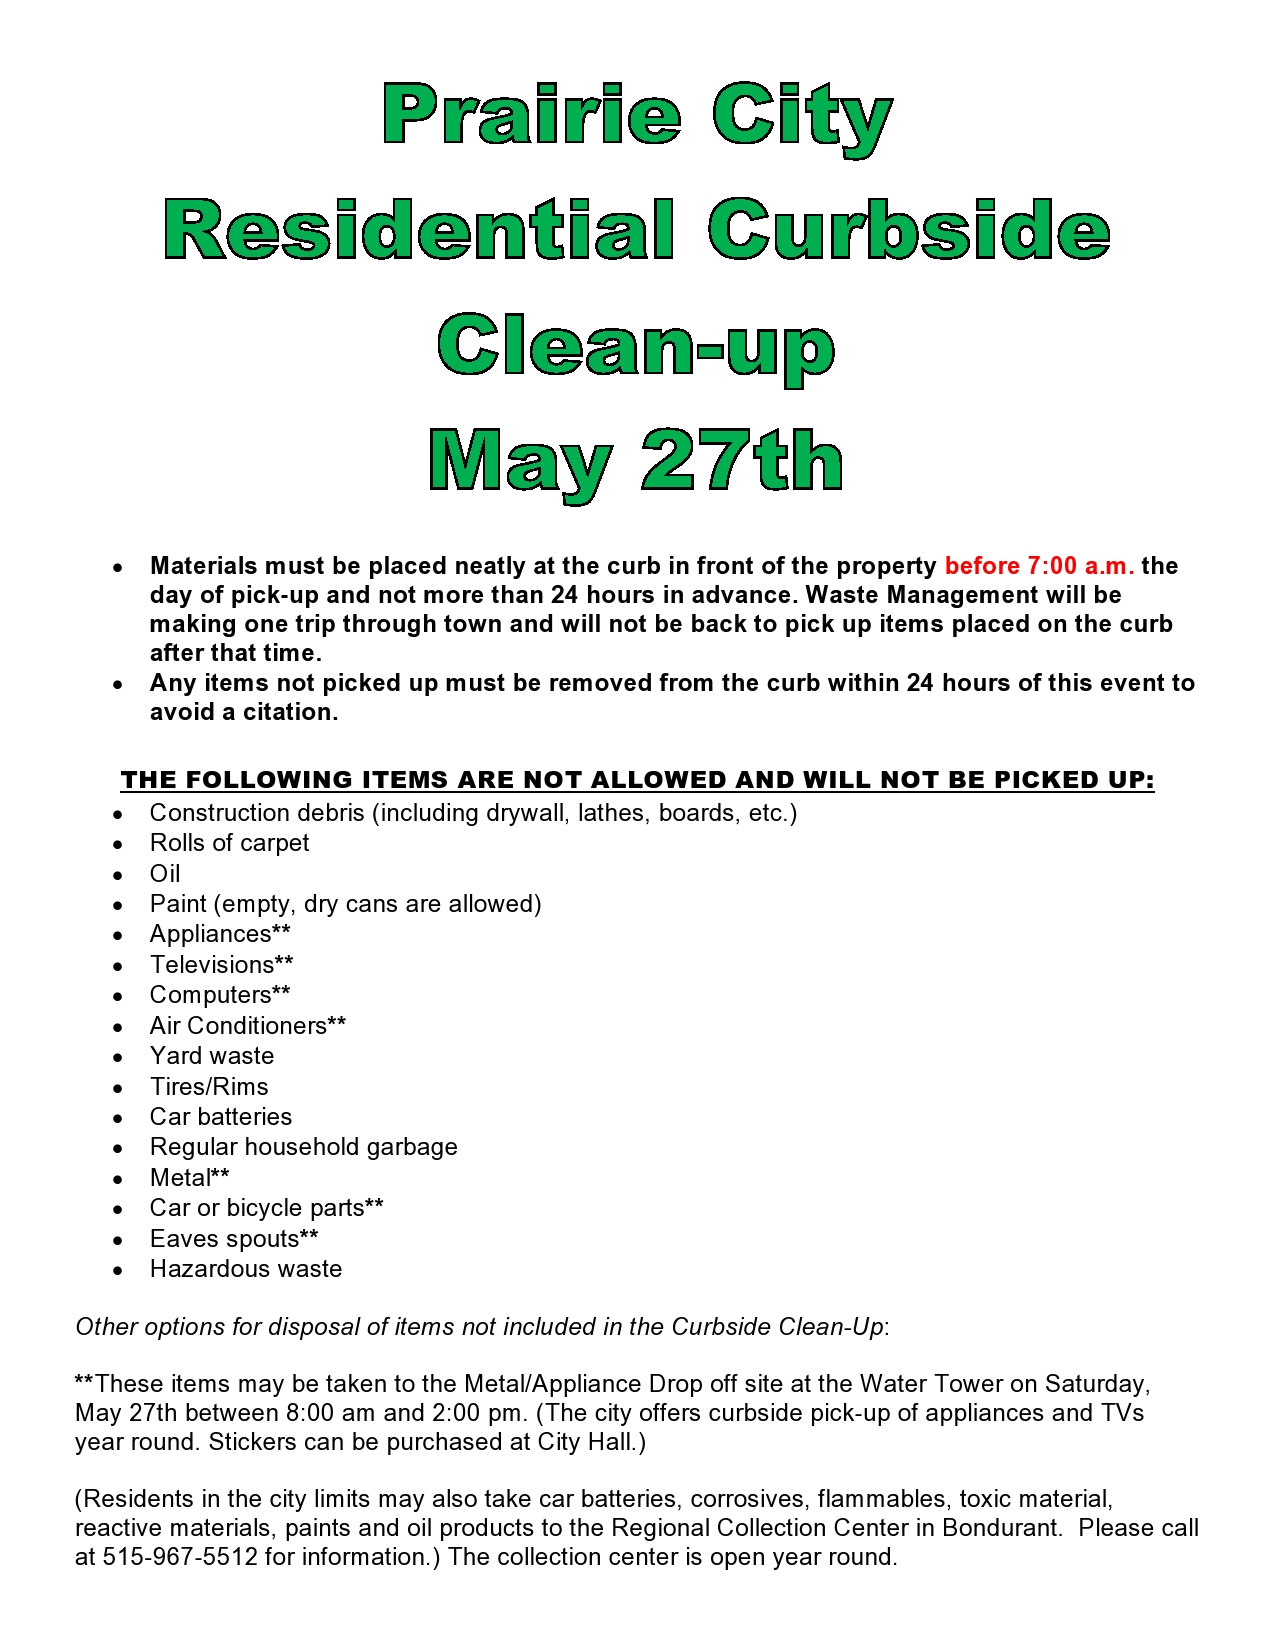 Curbside Clean-up